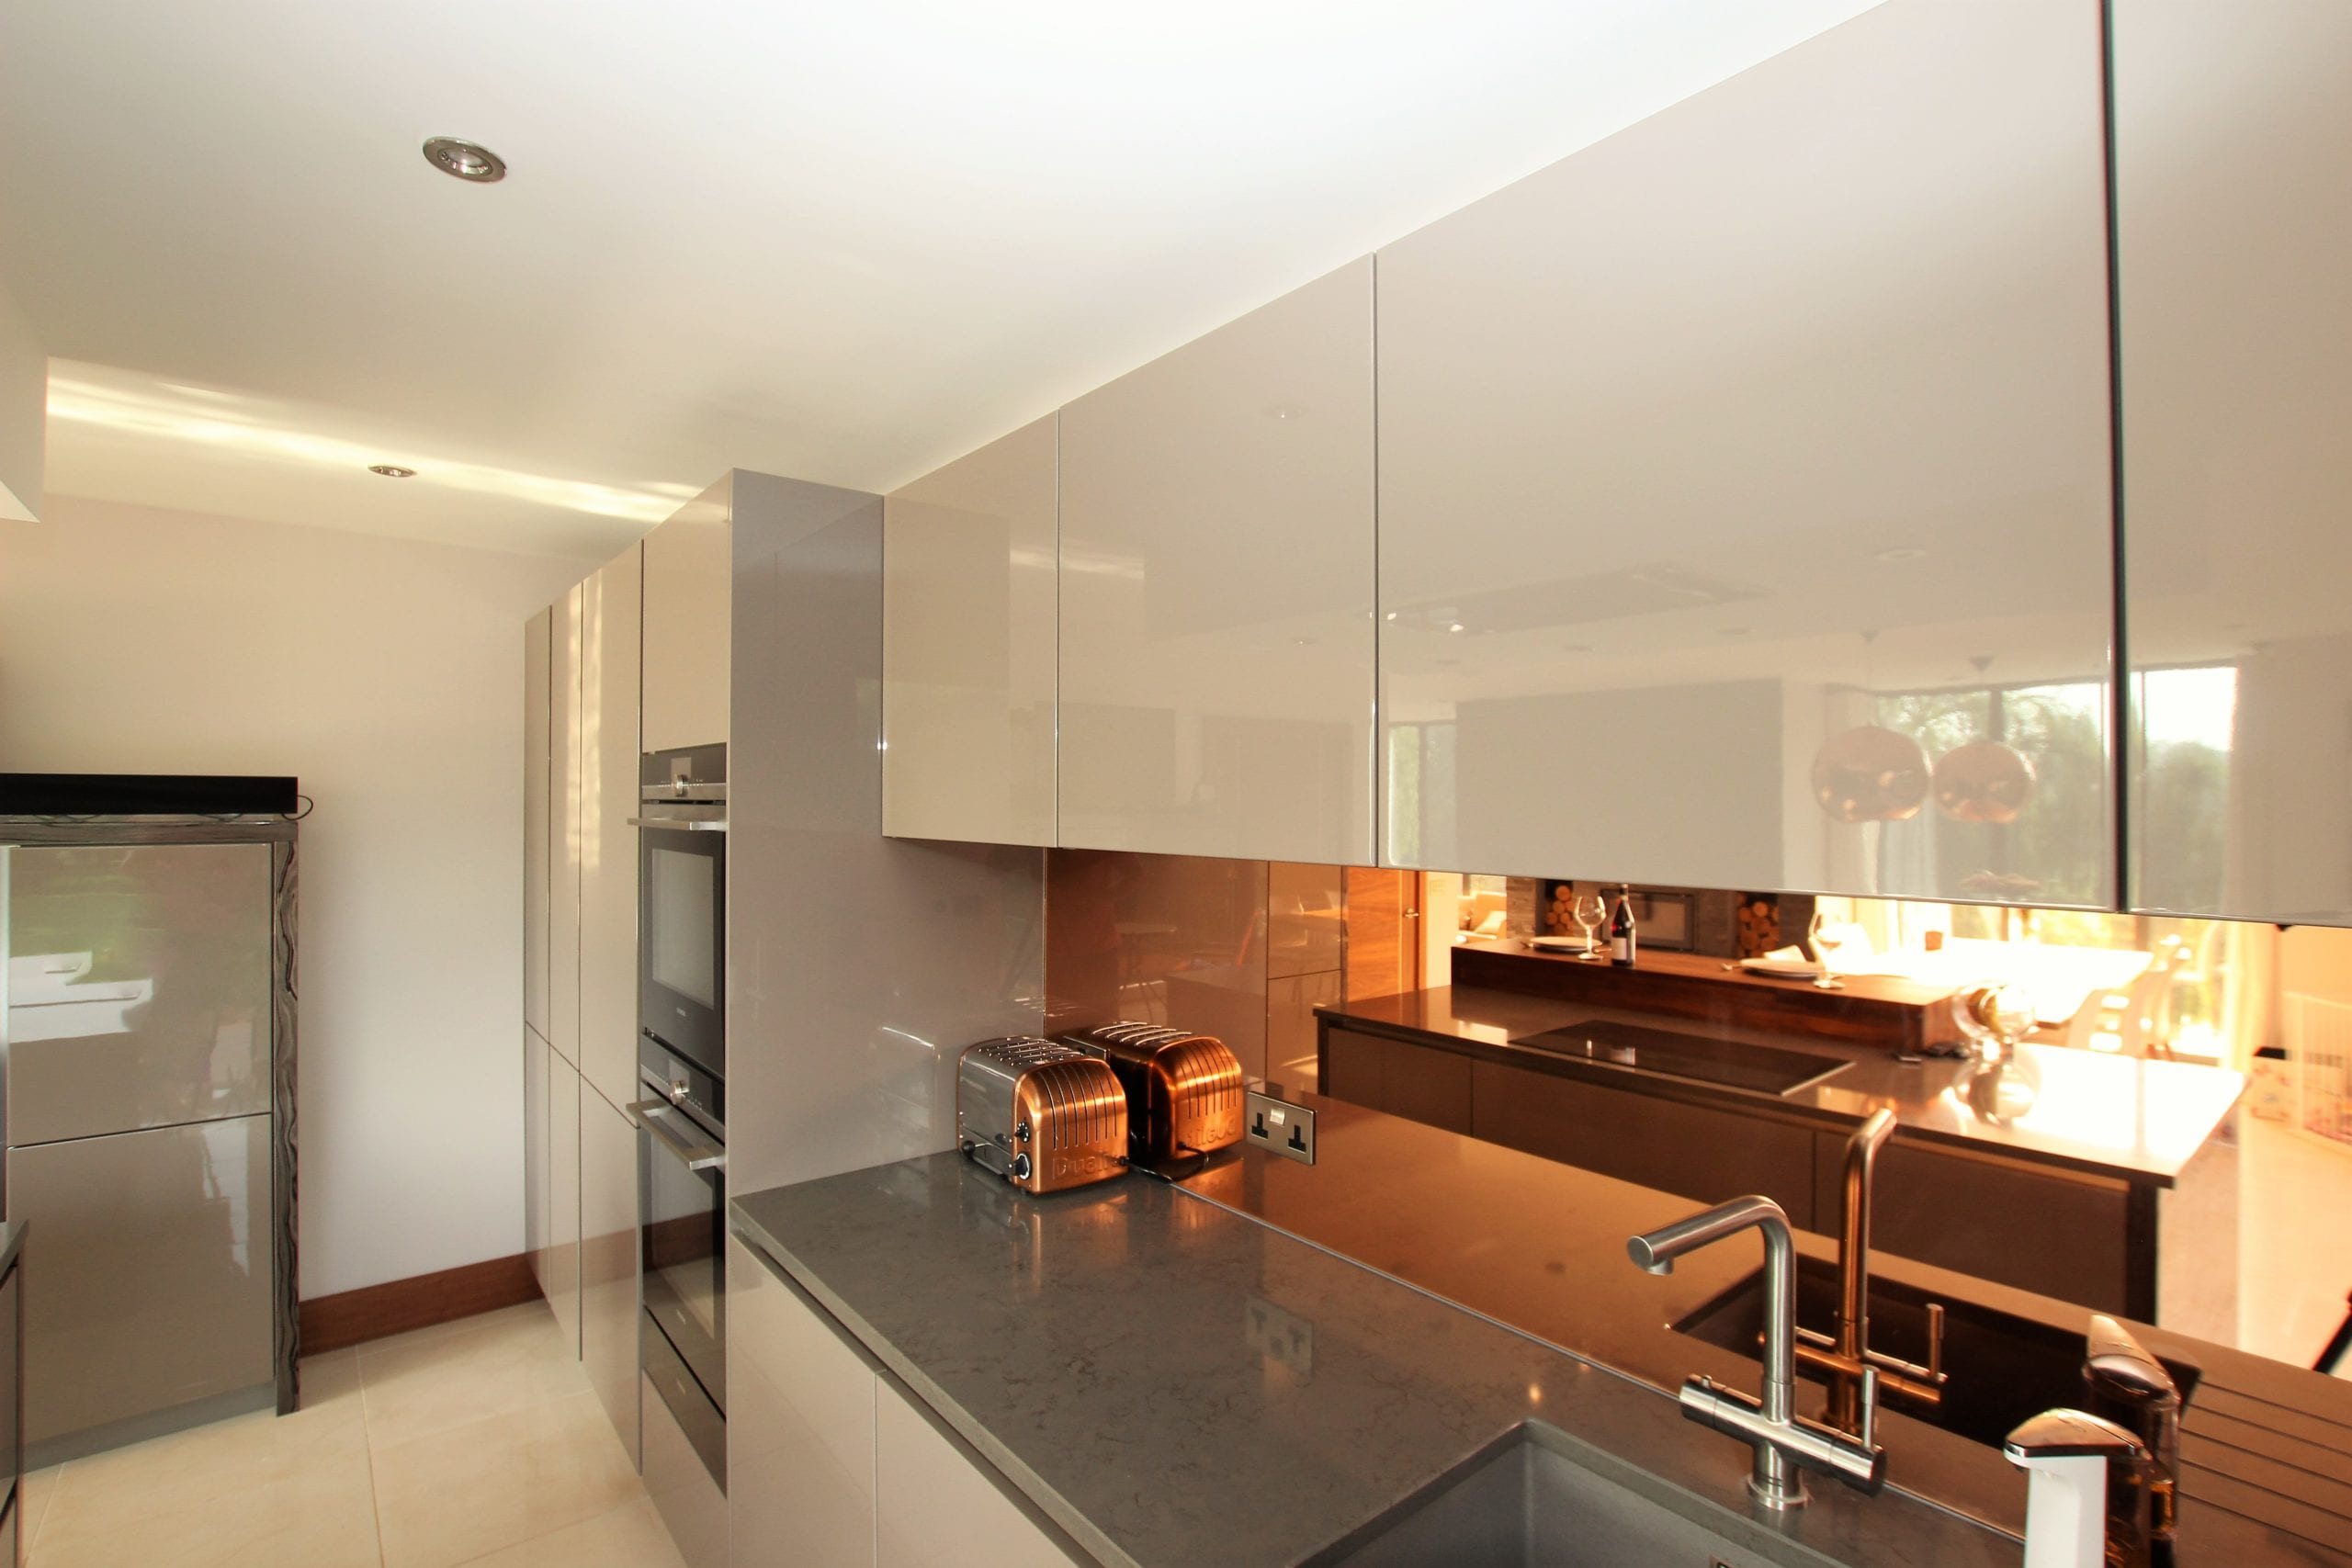 16. Bronze mirror splashback scaled - John Willox Kitchen Design, Ellon